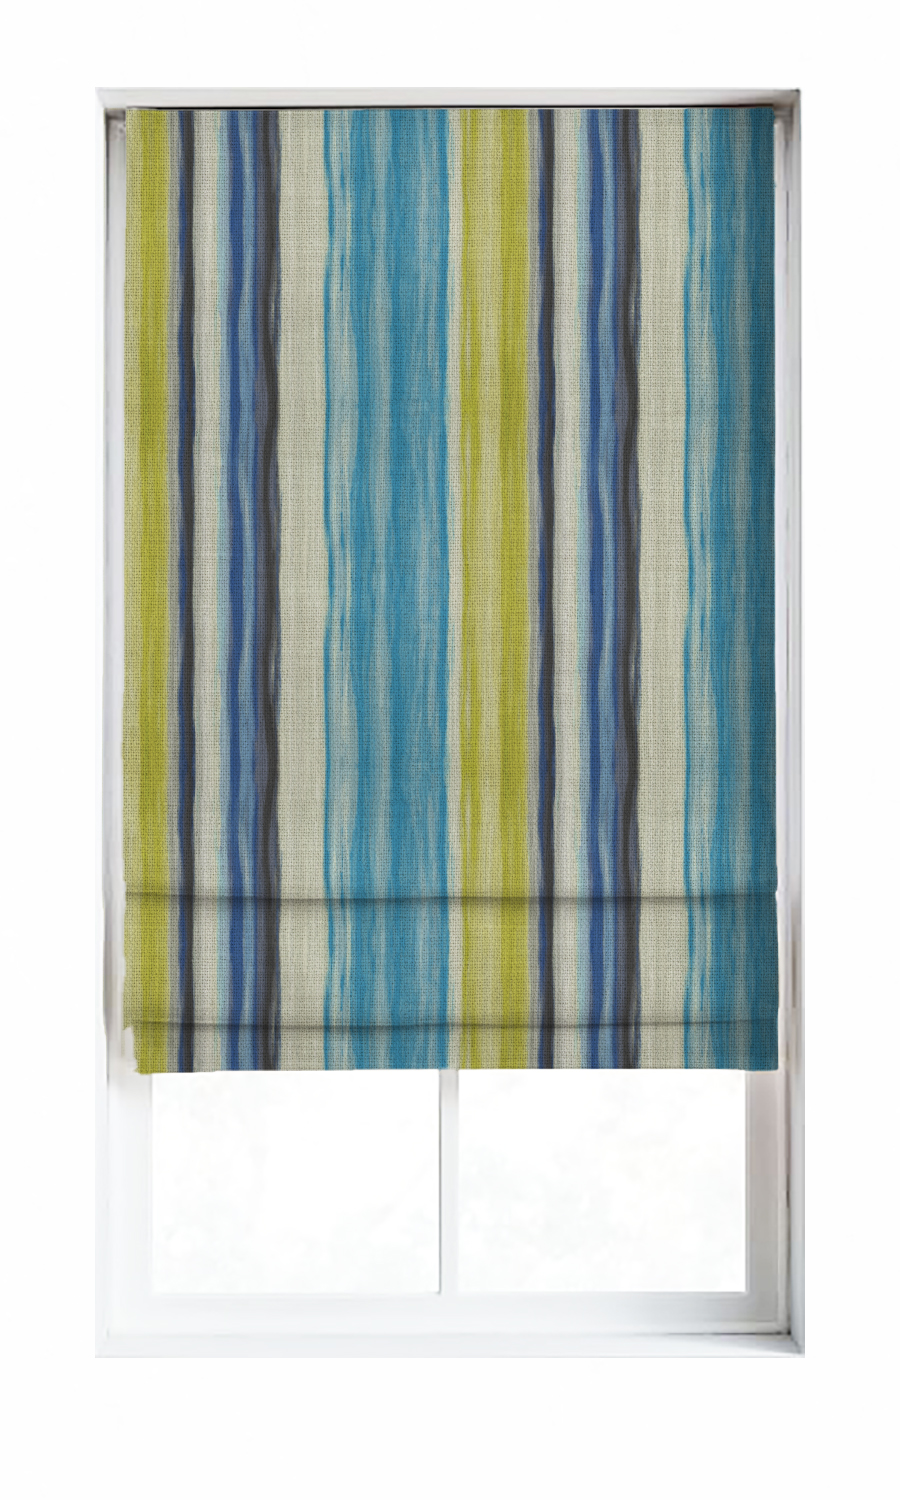 Colour Full Window Shades For Kids Room